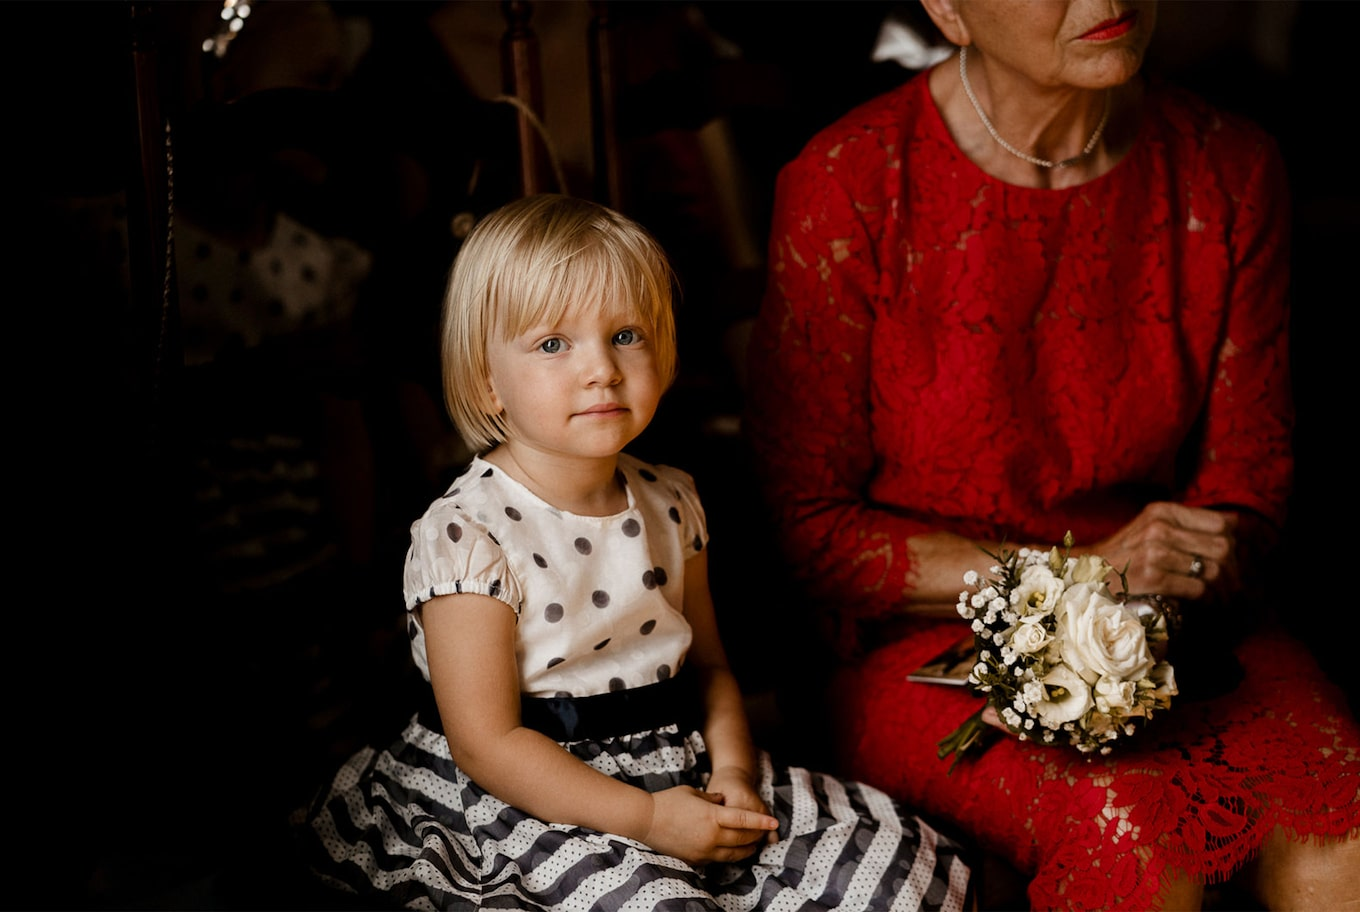 yannick zurfluh sony alpha 9 little girl in a black and white dress